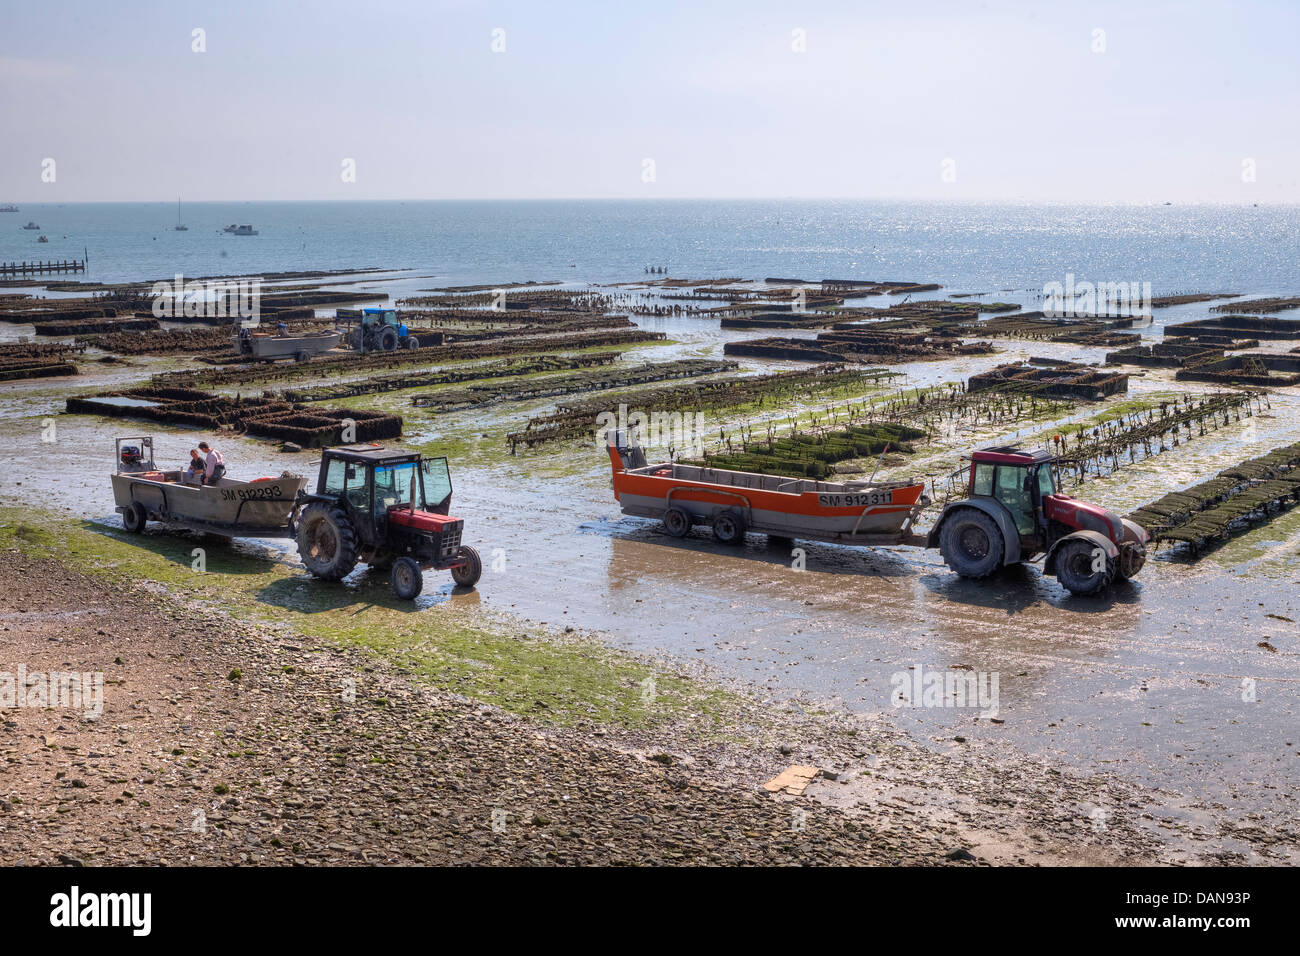 oyster farming in Cancale, Brittany, France Stock Photo